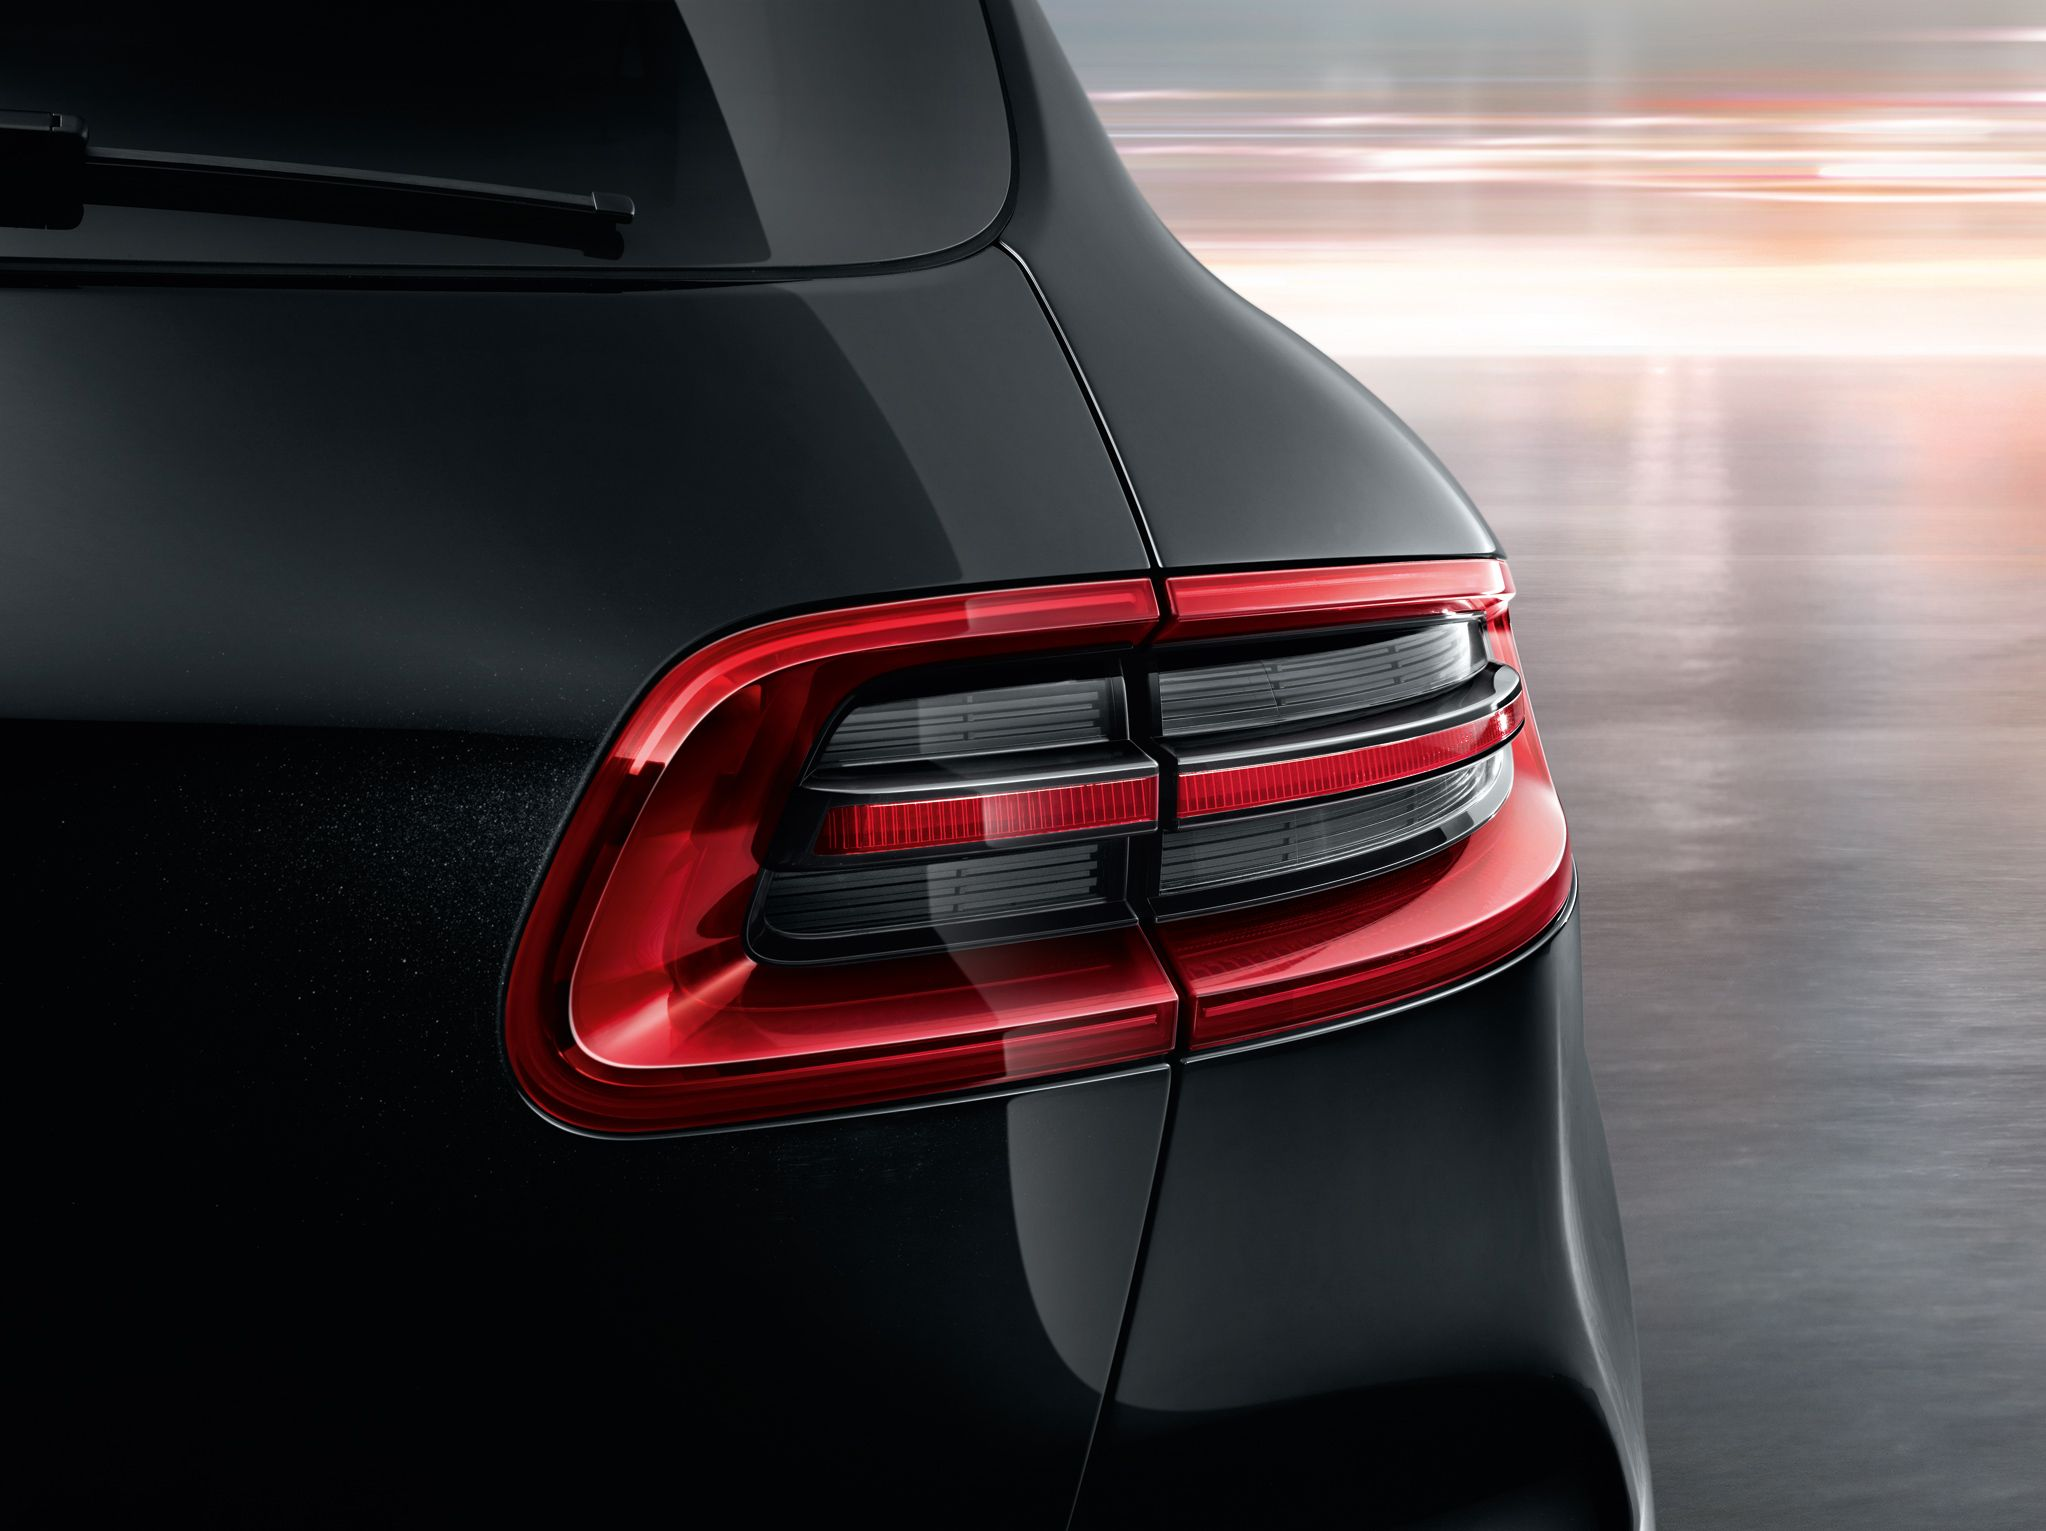 Porschemacan The Narrow Led Tail Lights Have A Three Dimensional Design This Creates An Unusual Sense Of Depth And Attracts Best Suv Porsche Car Detailing